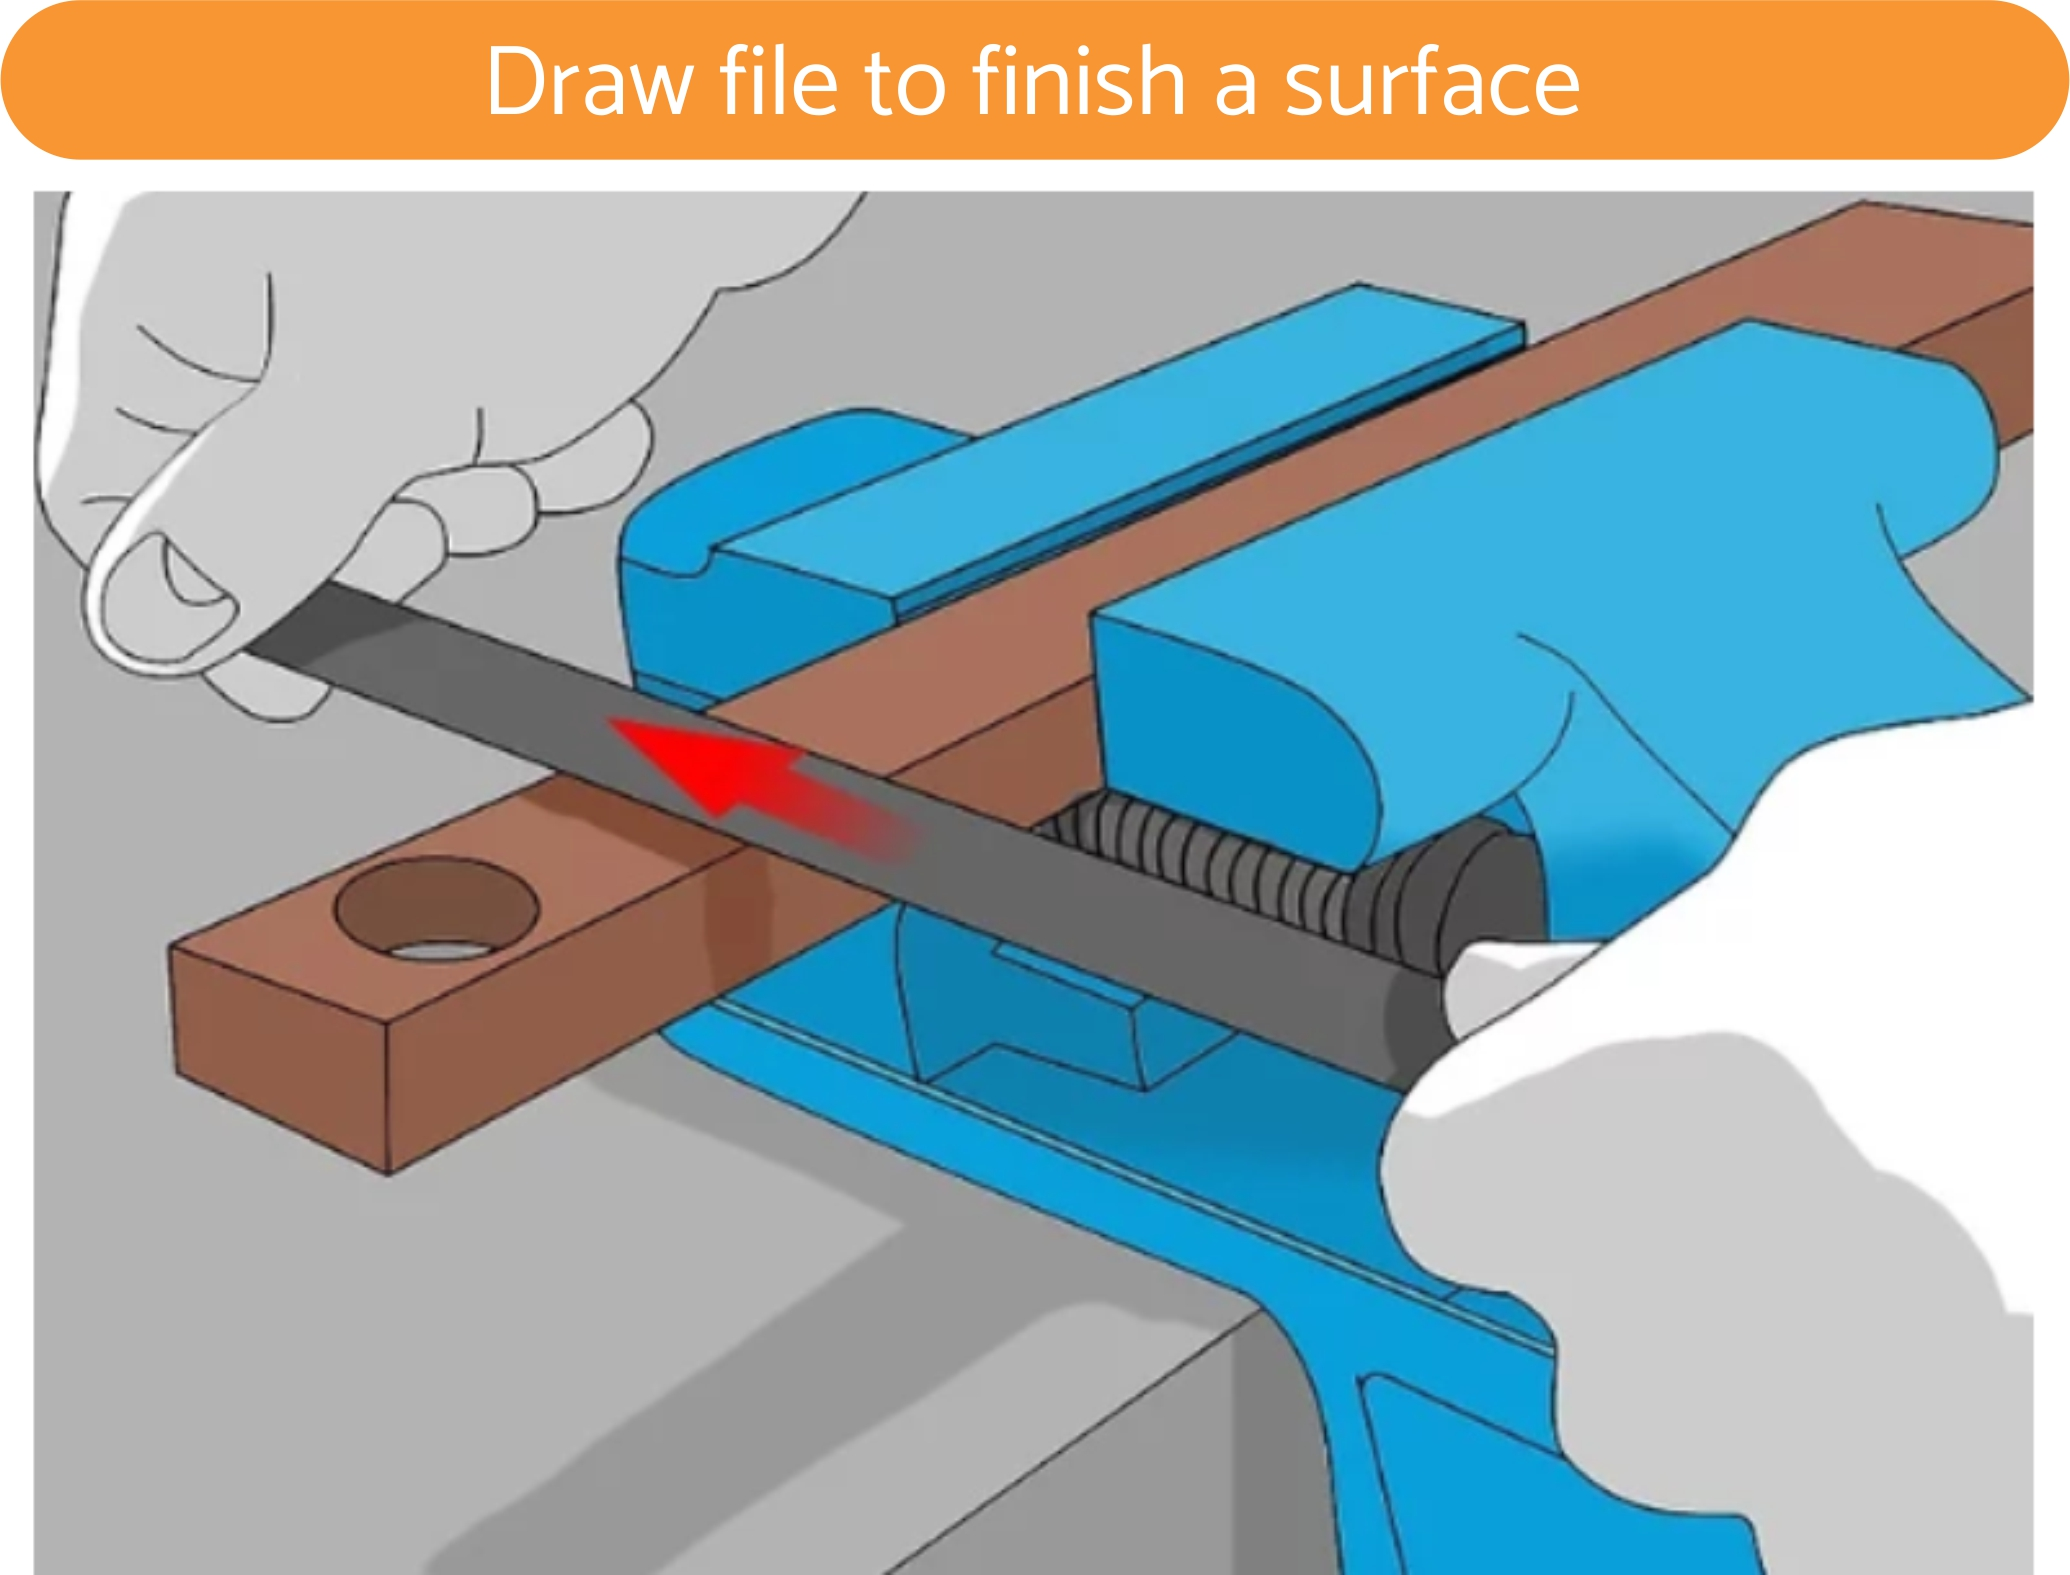 Draw file to finish a surface